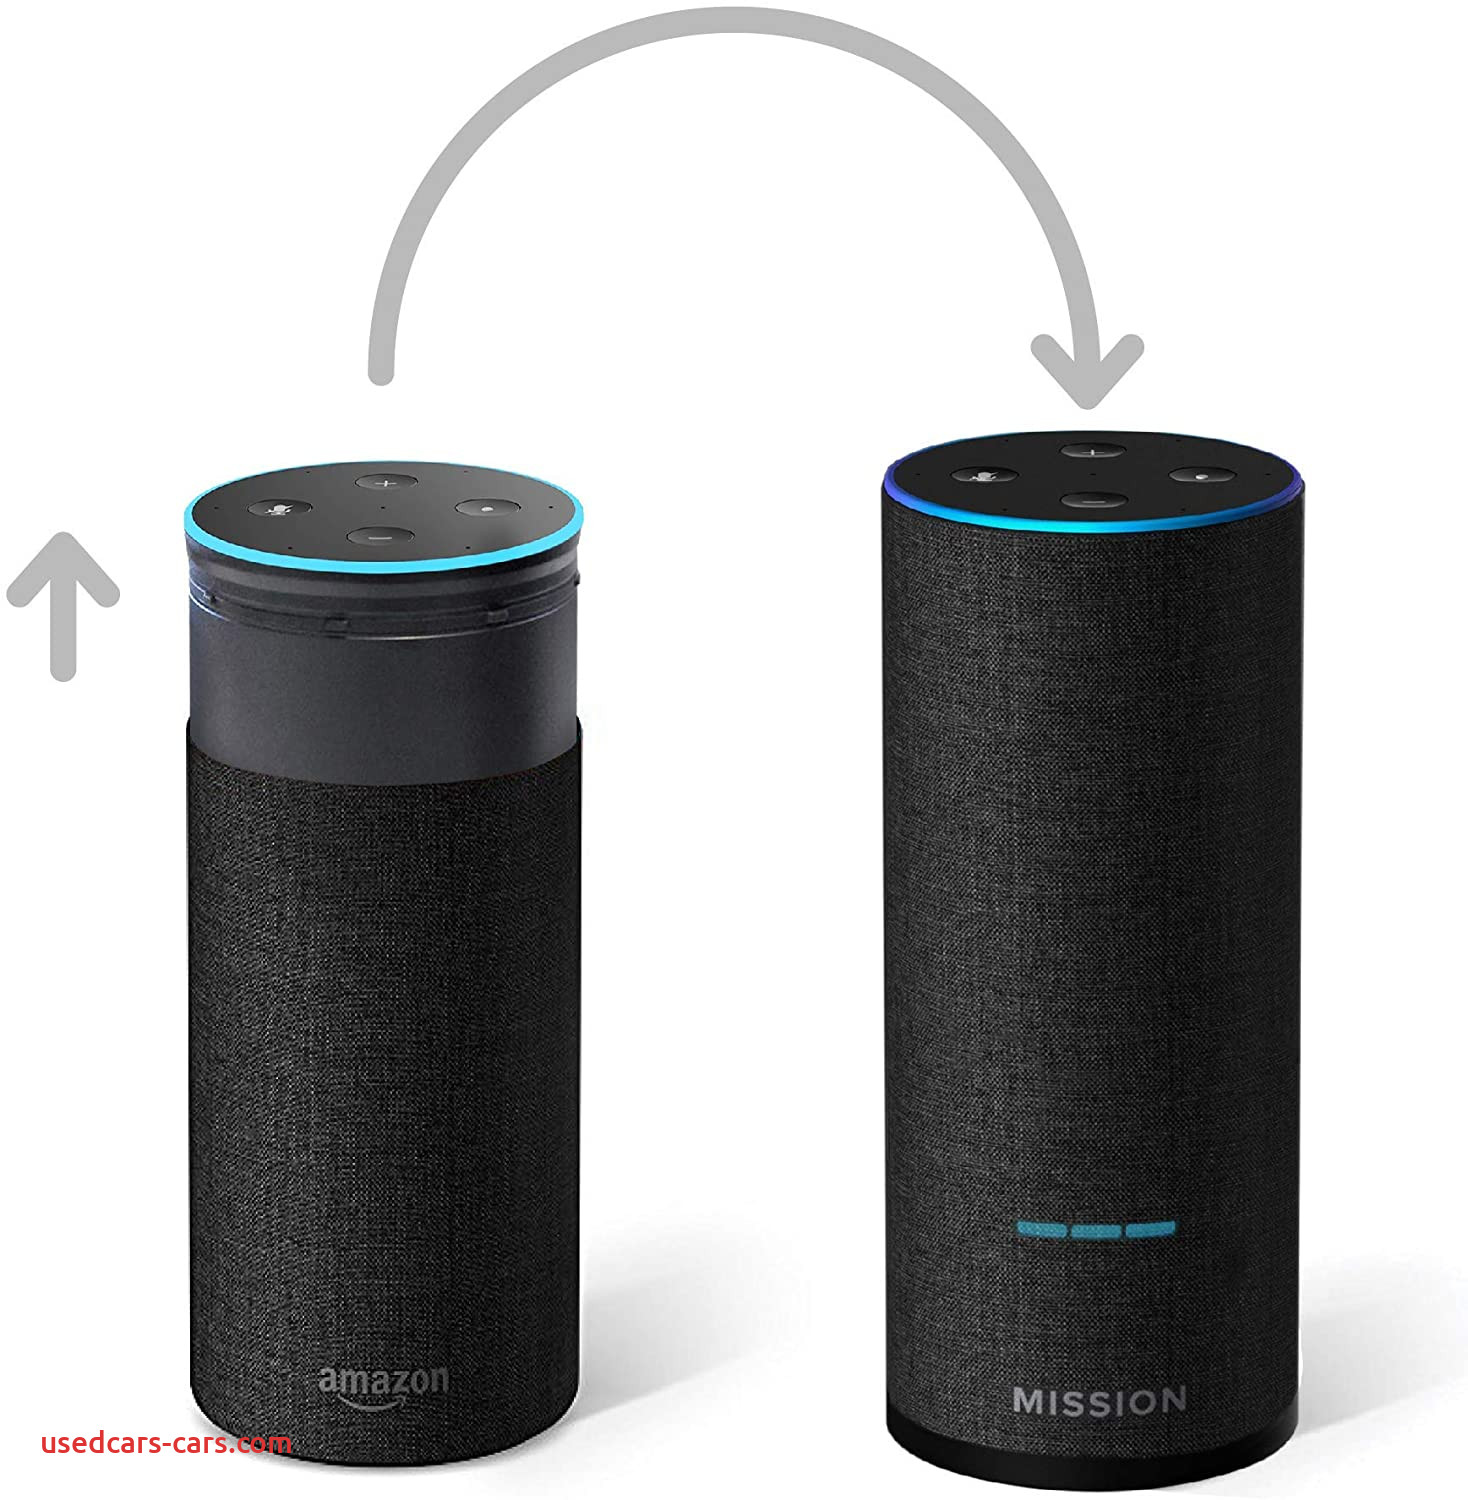 Amazon Echo Specs Fresh Mission Shell Battery Base for Amazon Echo 2nd Gen Make Your Echo Portable Charcoal Fabric